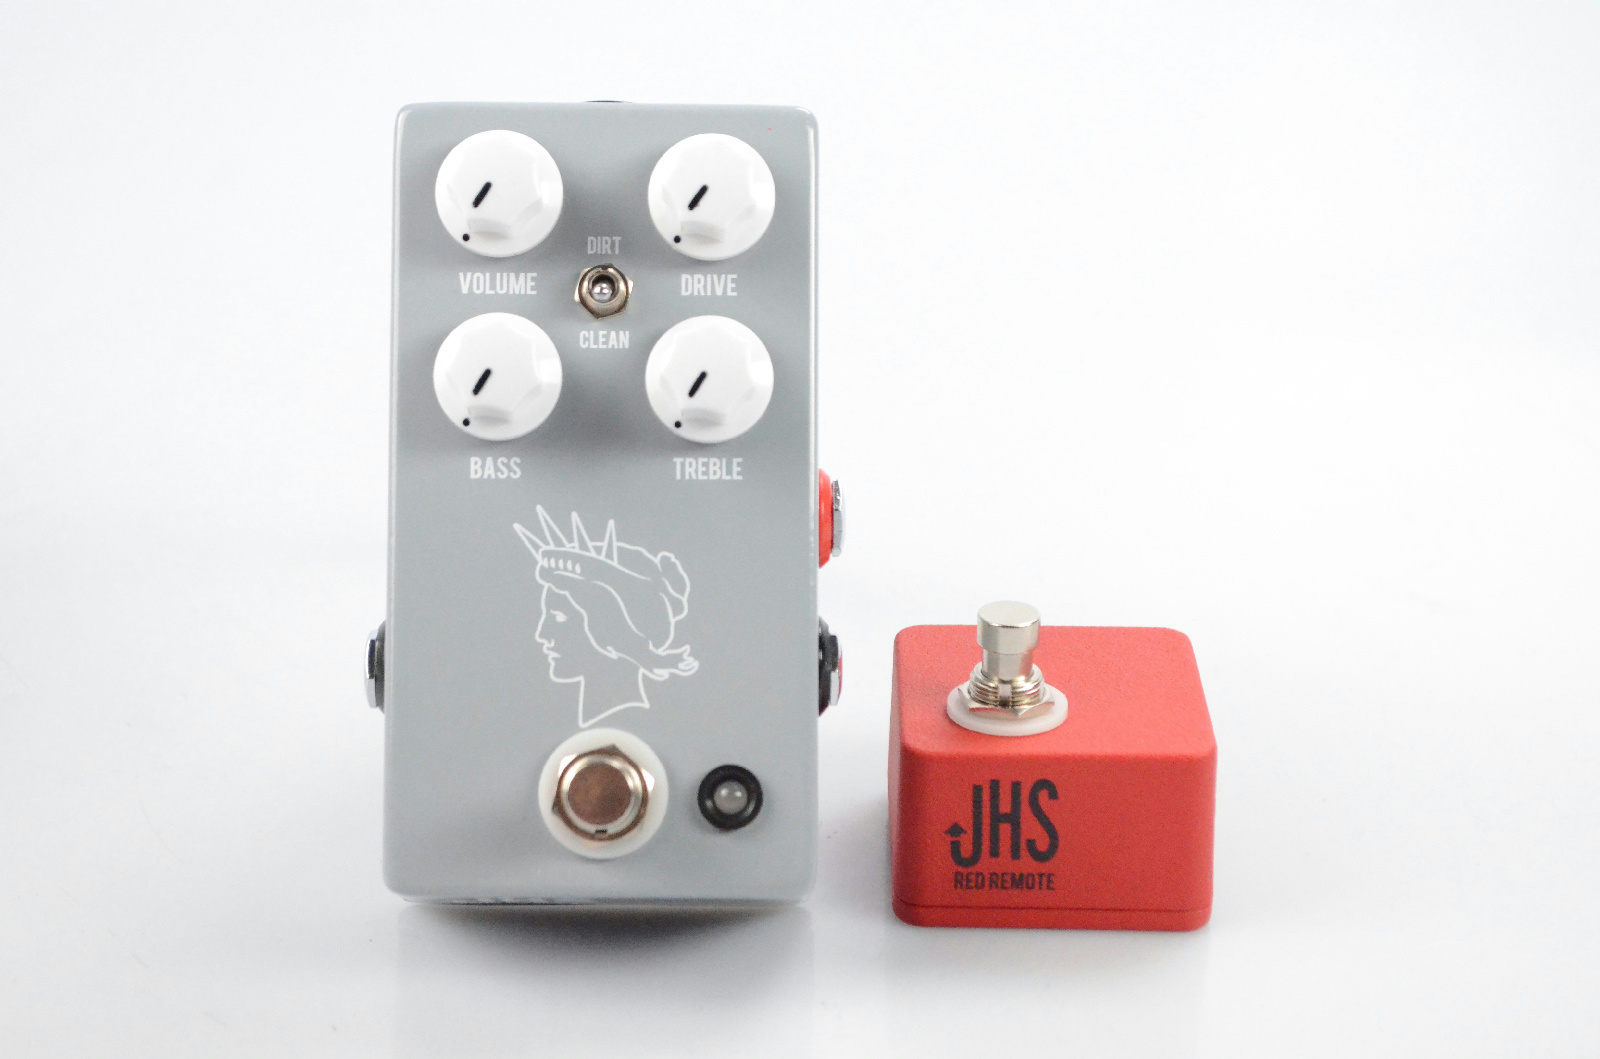 JHS Twin Twelve V2 Overdrive Boost Silvertone Pedal w/ Red Remote Switch #31790